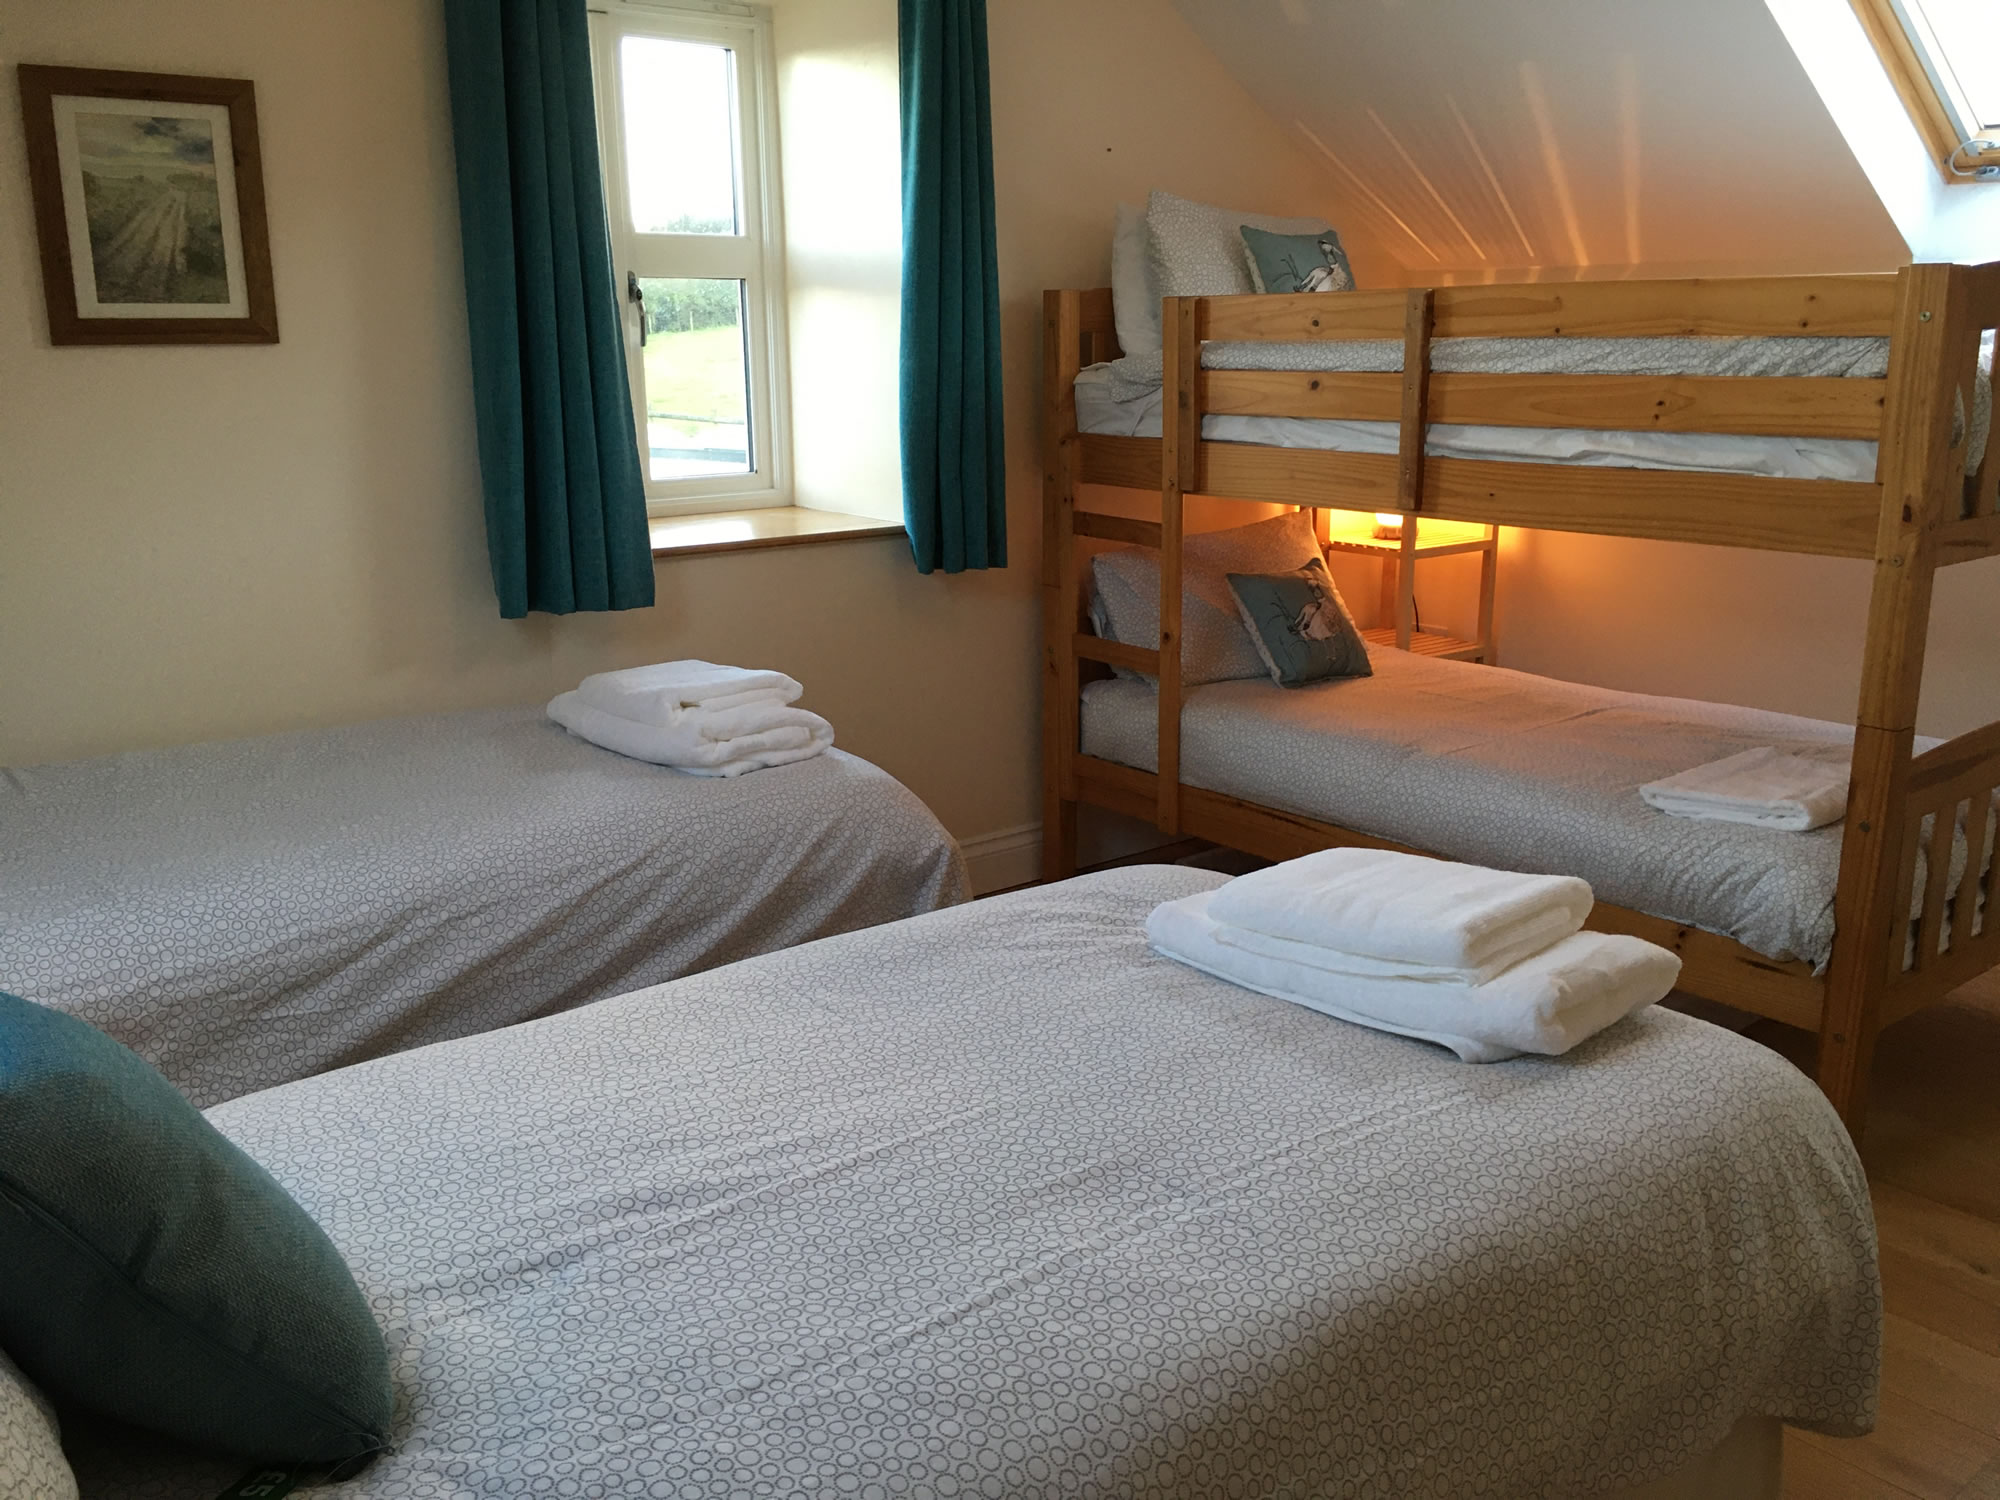 Hardingsdown Bunkhouse and The Chaffhouse. The perfect base for all holidays in the Gower Peninsula.